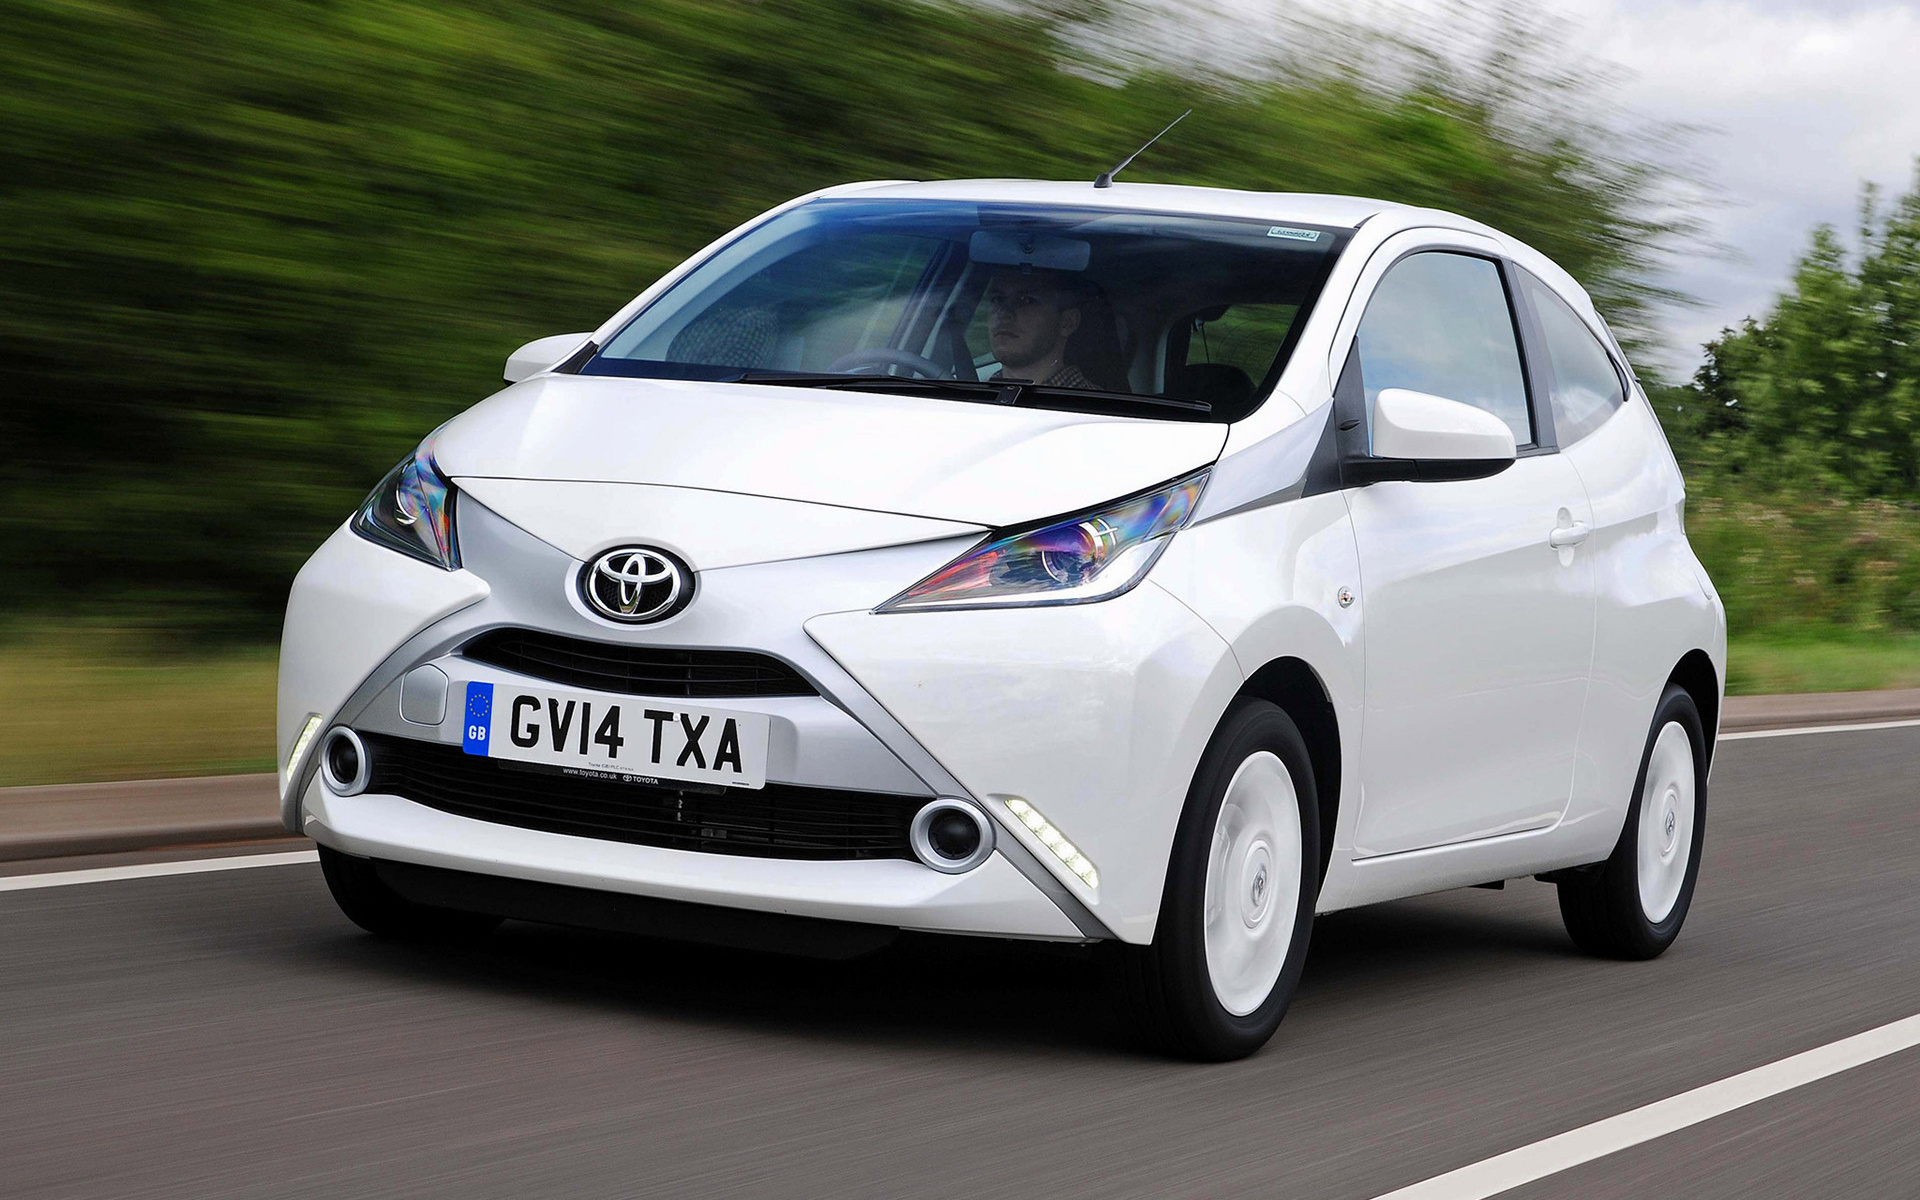 2014 Toyota Aygo x clusiv 3 door UK   Wallpapers and HD Images 1920x1200